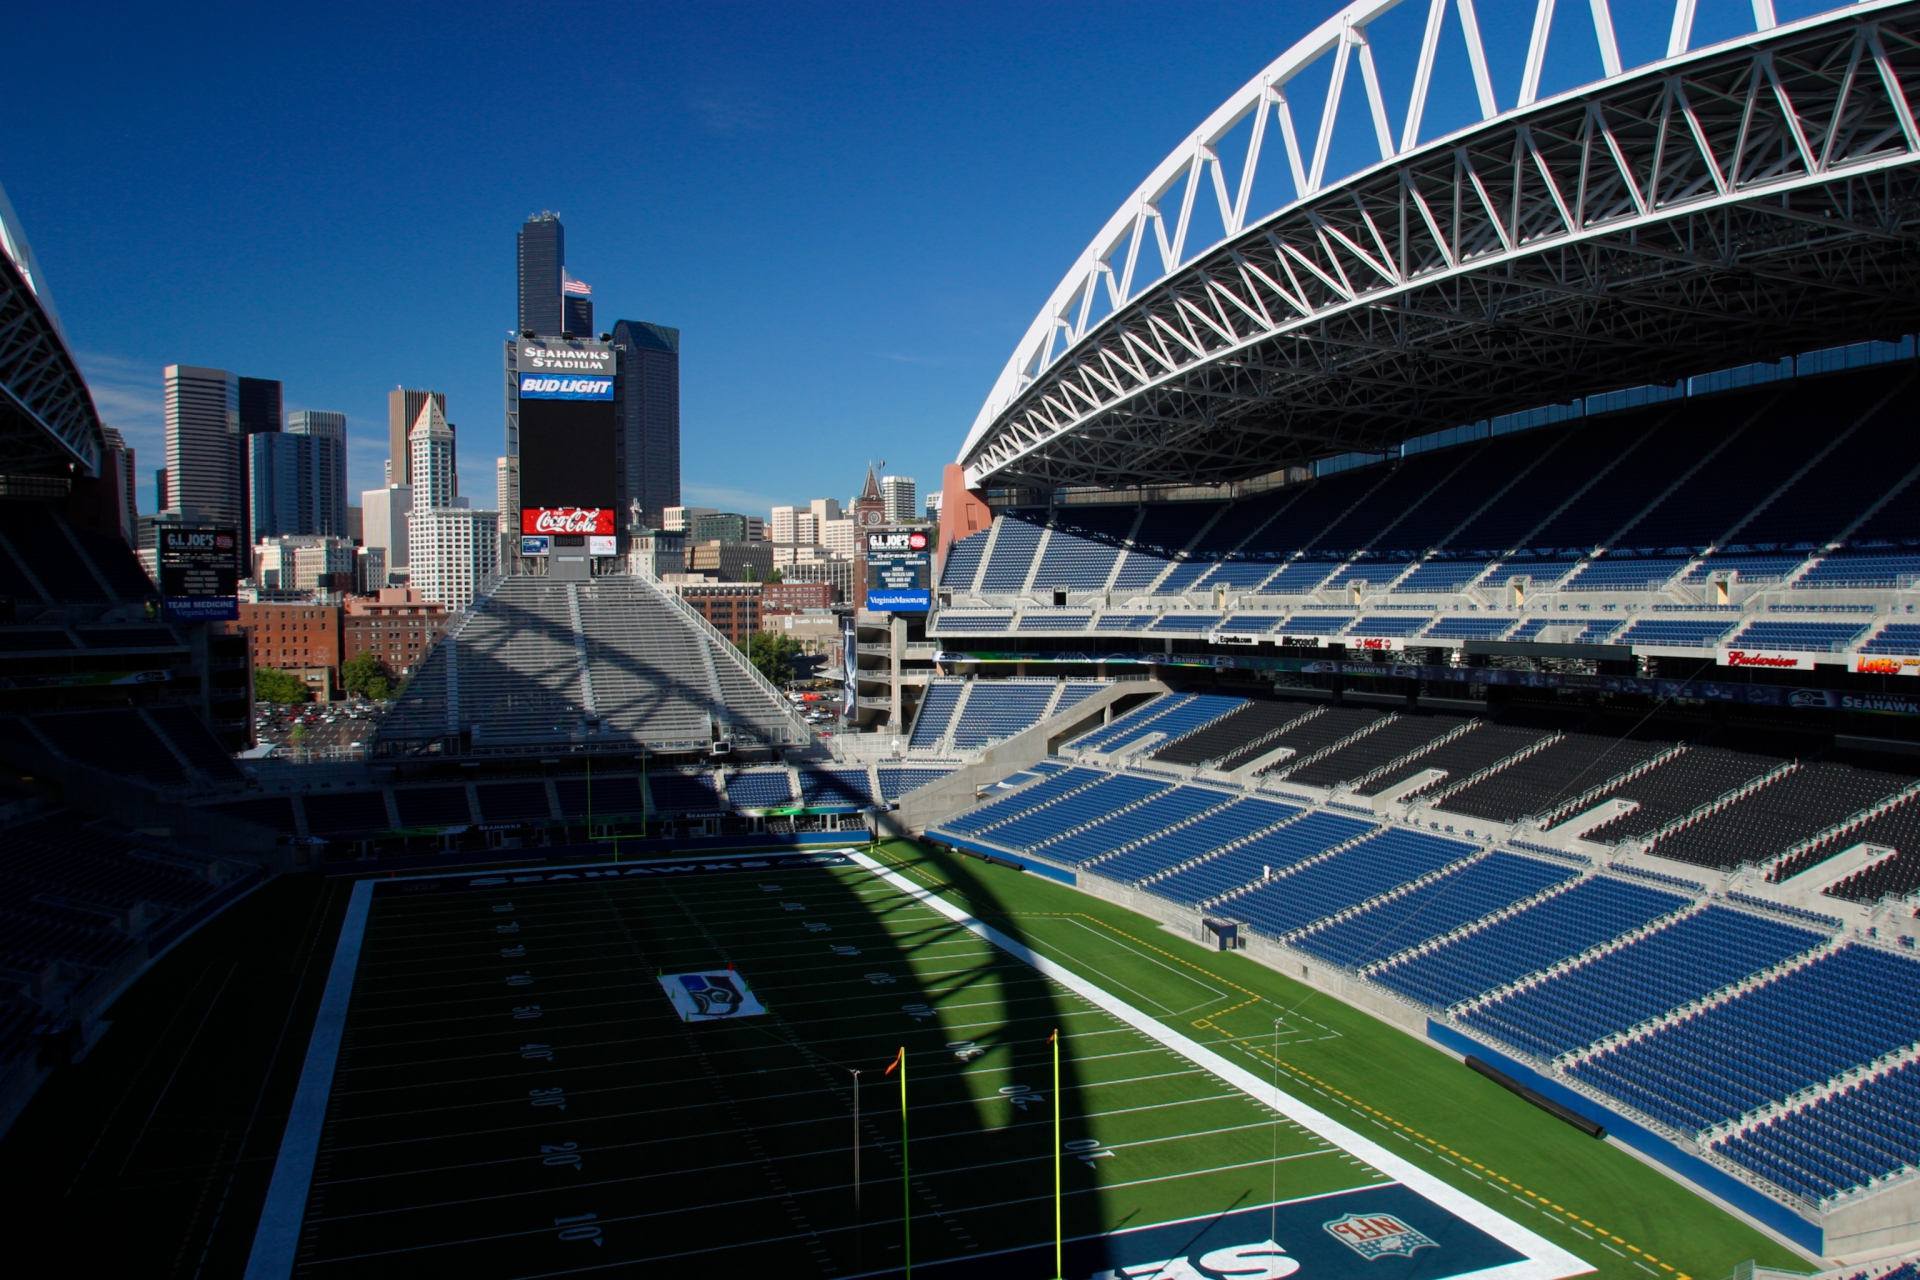 Seahawks Stadium & Exhibition Center Photo